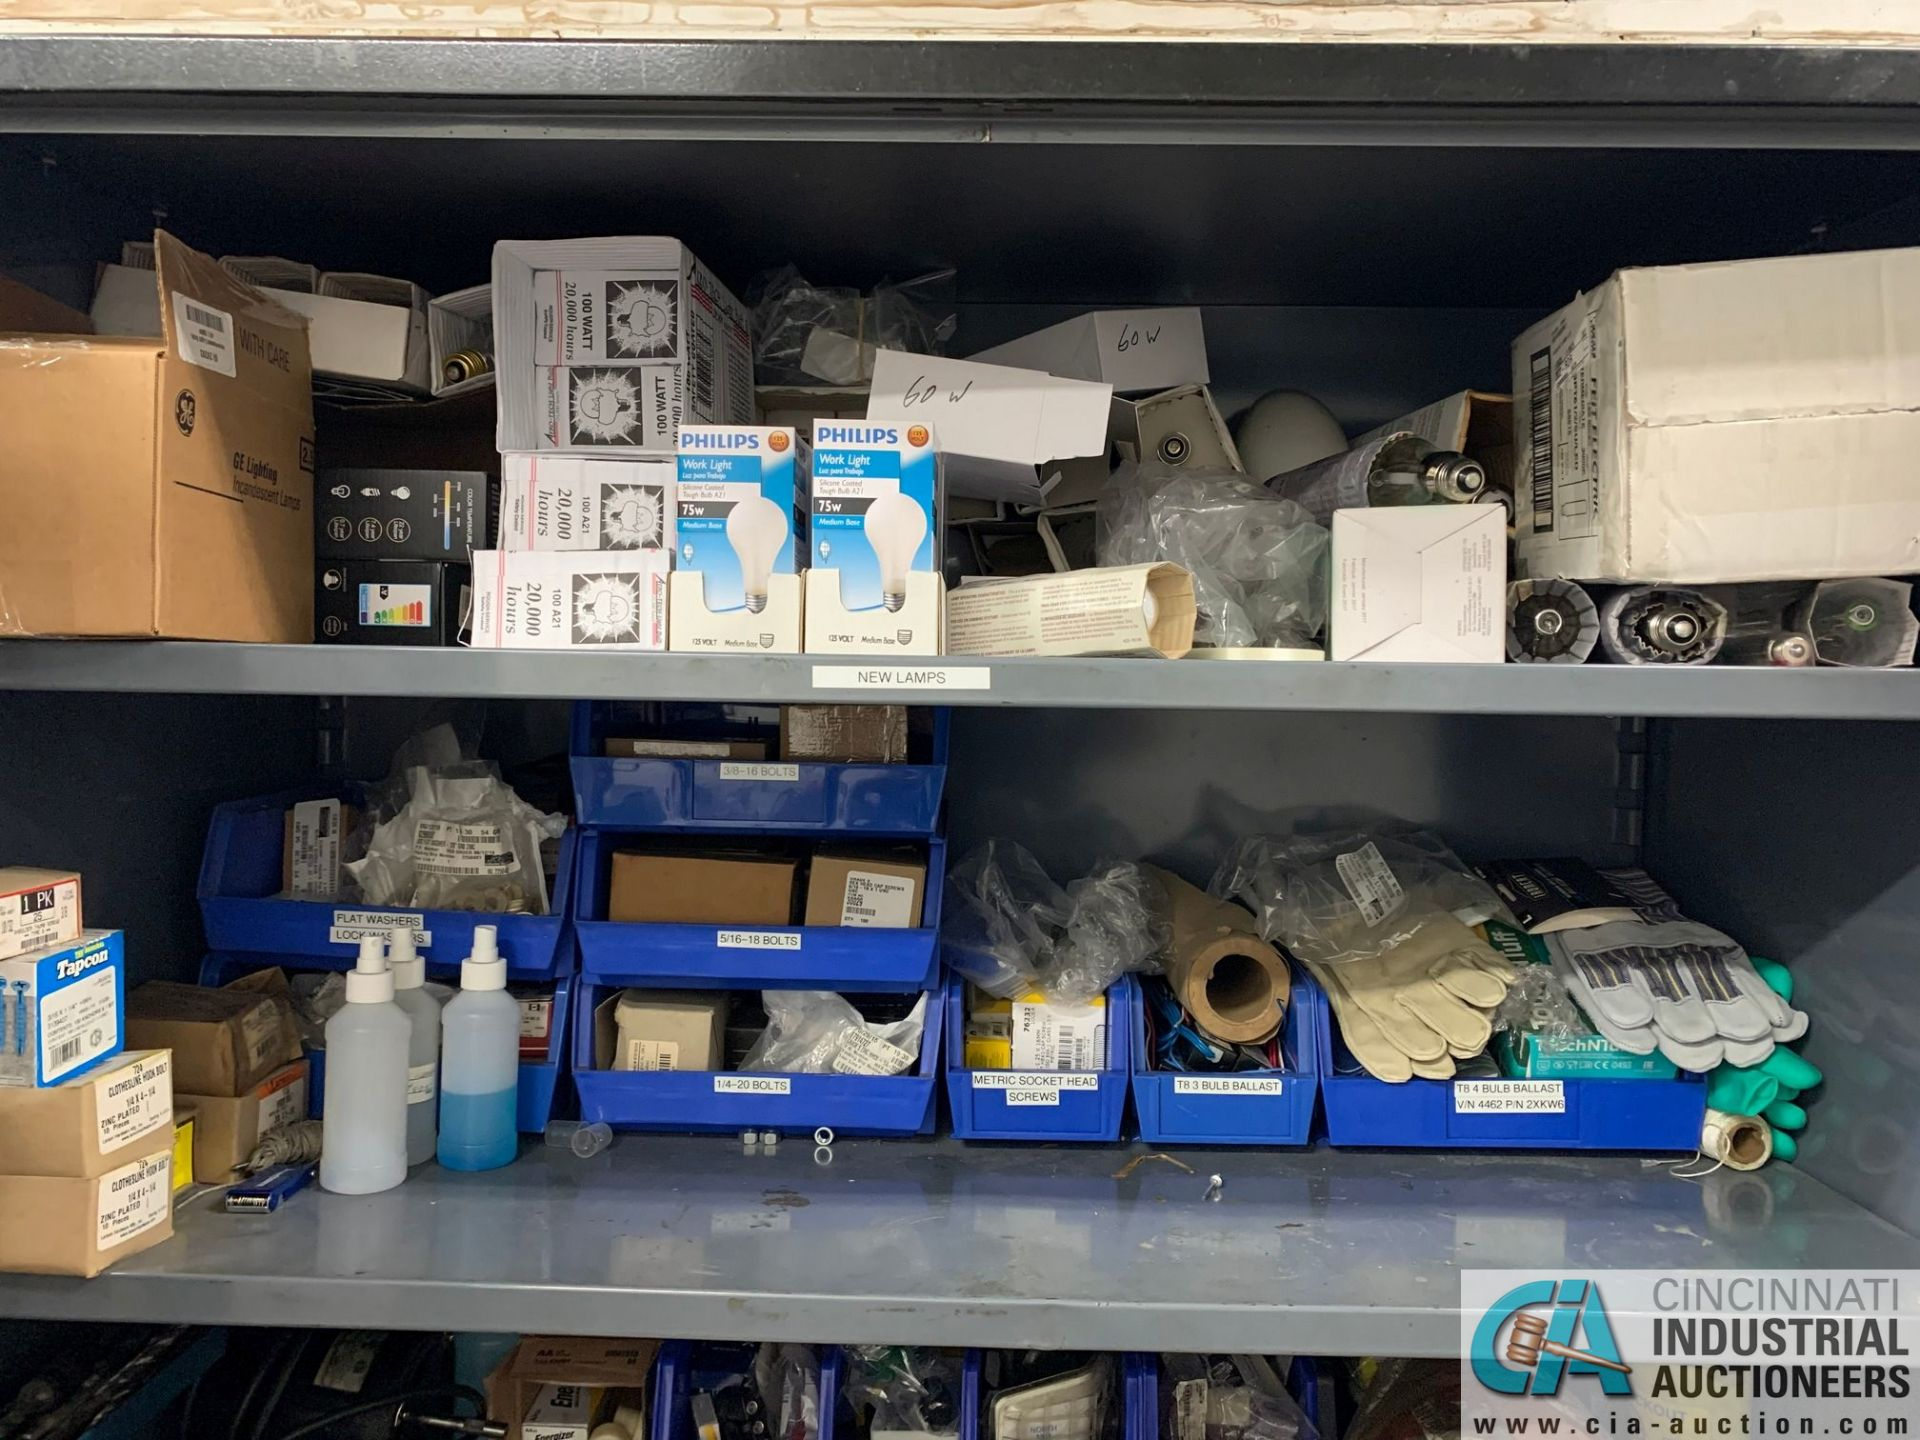 (LOT) (4) CABINETS WITH MAINTENANCE PARTS AND SUPPLIES, FUSES, WIRE, CONNECTORS AND RELATED - Image 2 of 13